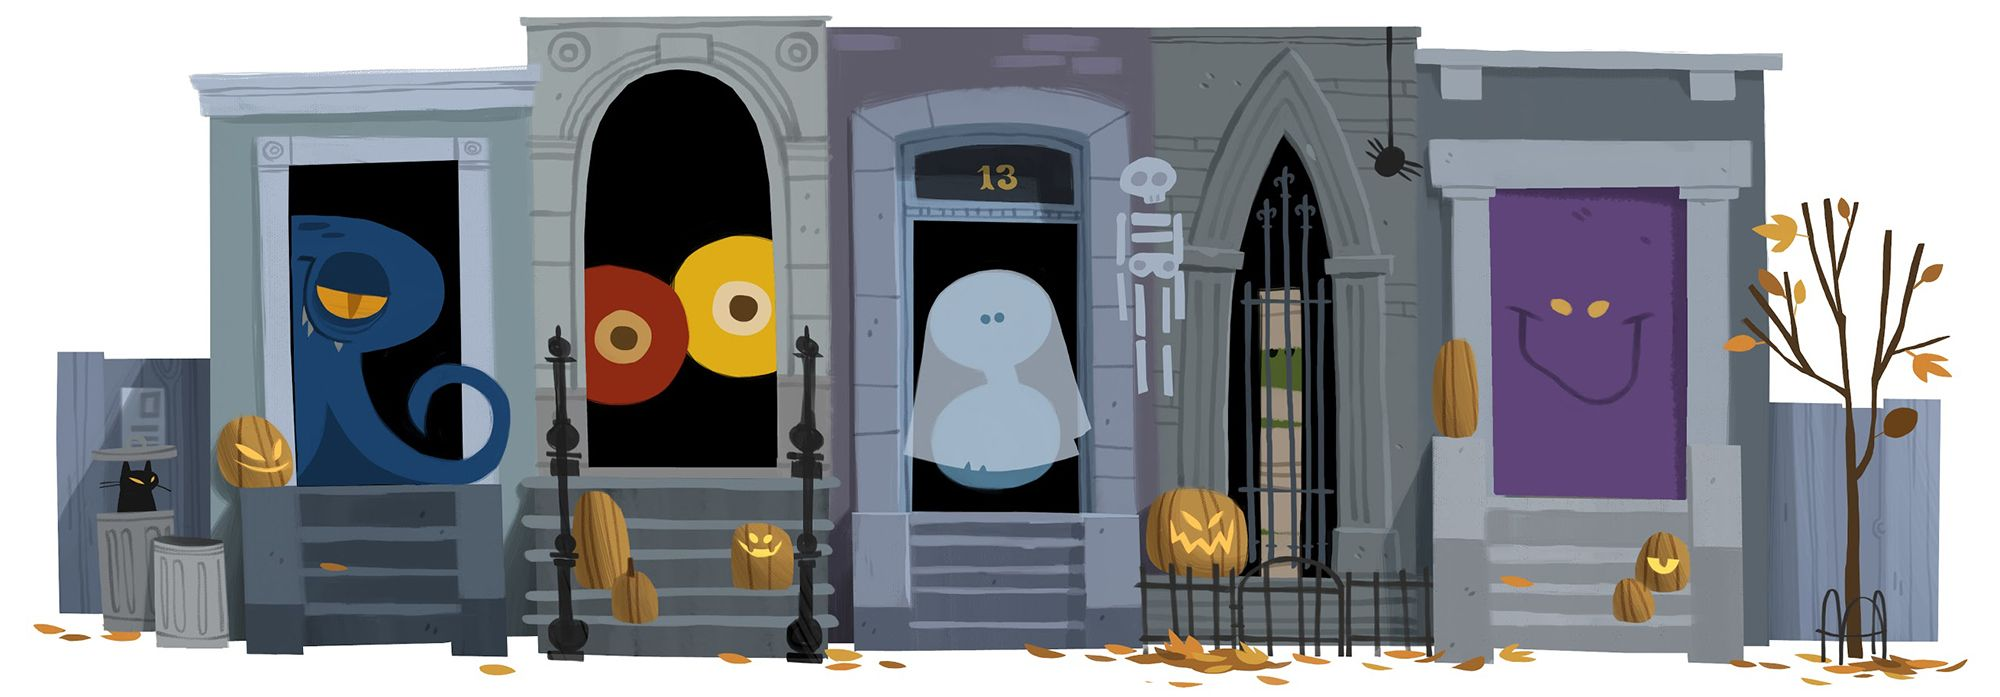 Halloween 2012 [Хеллоуин] /This doodle was shown 31.10